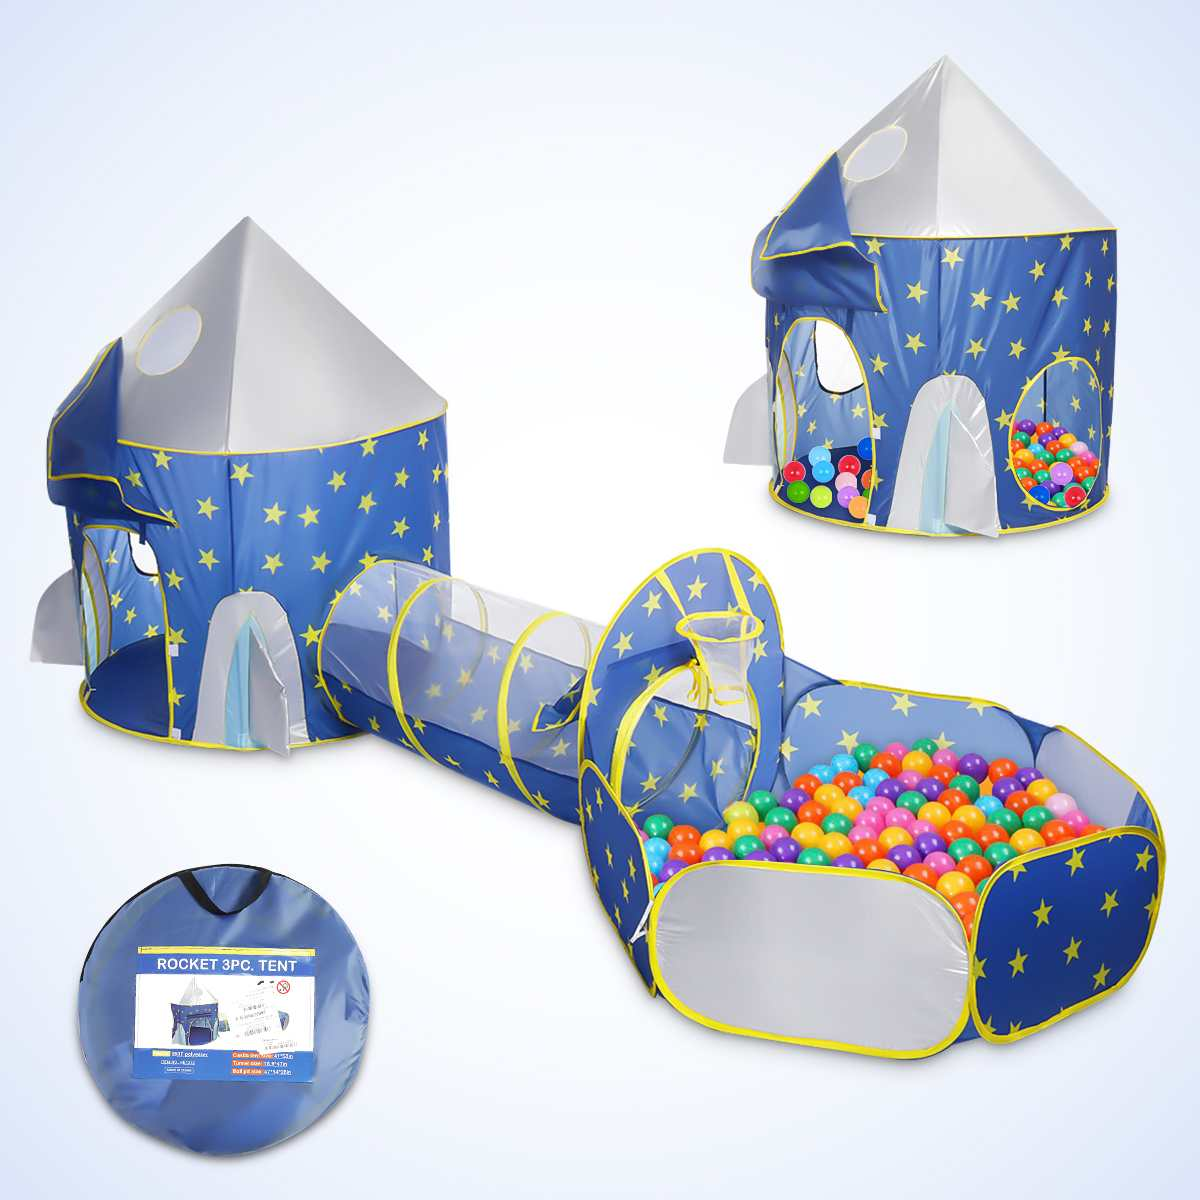 3 In 1 Children's Tent Spaceship Tent Outdoor And Indoor Space Yurt Tent Game House Rocket Ship Crawling Play Tent Ball Pool